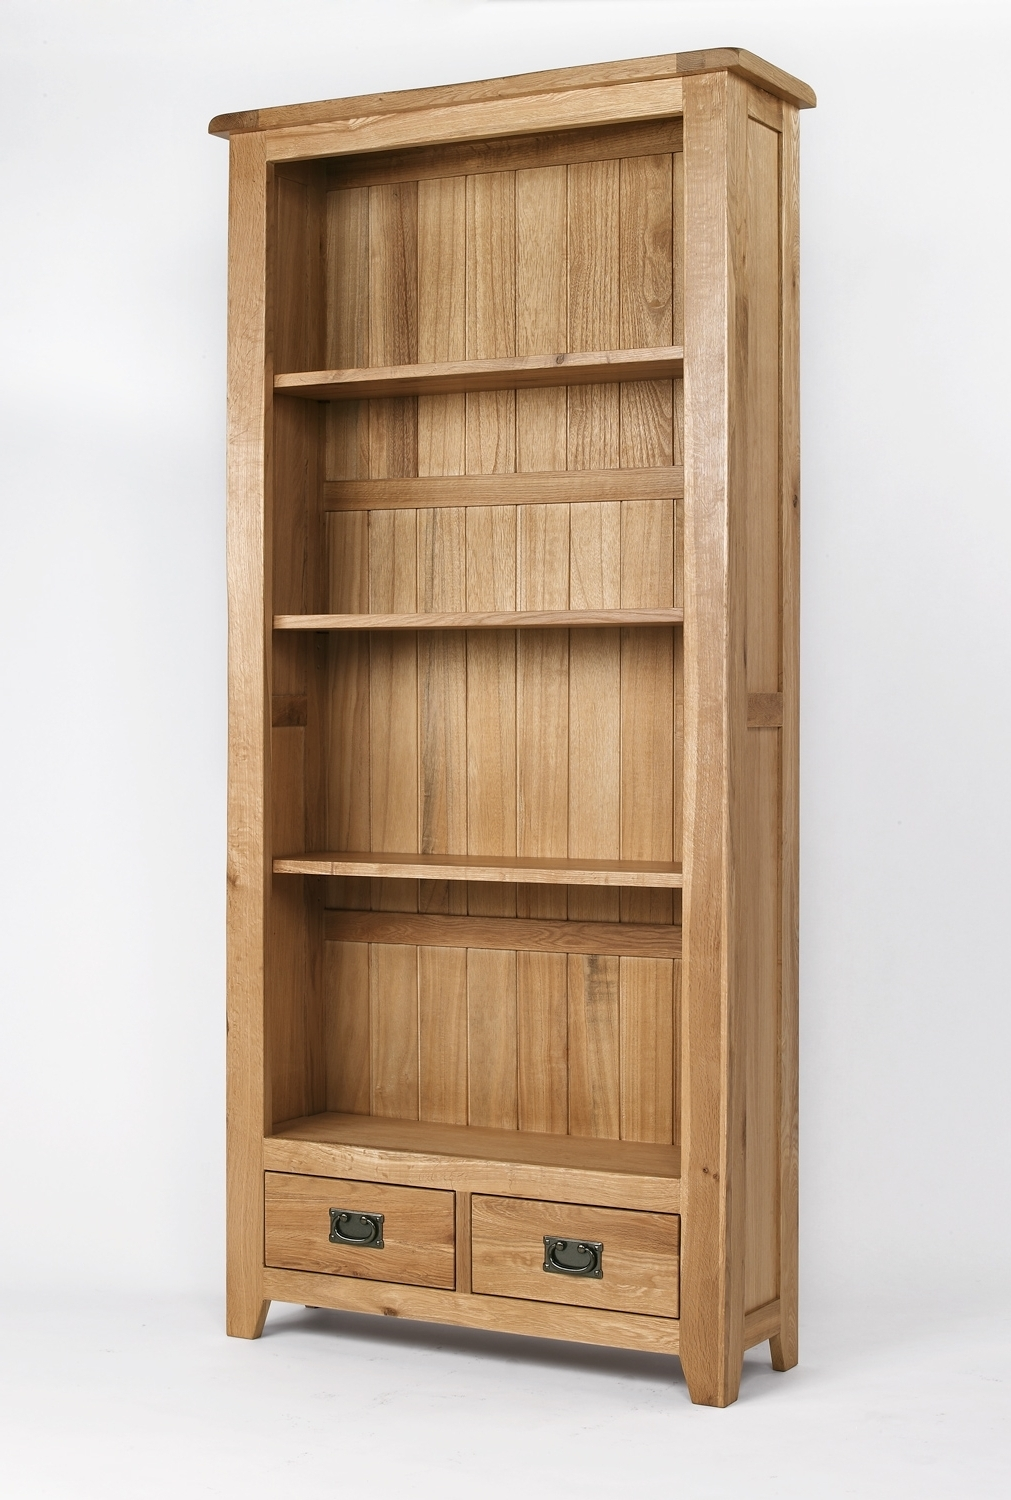 Wood Bookcases For Newest Bookcases Ideas: Amish Bookcases Furniture In Solid Wood Oak (View 9 of 15)